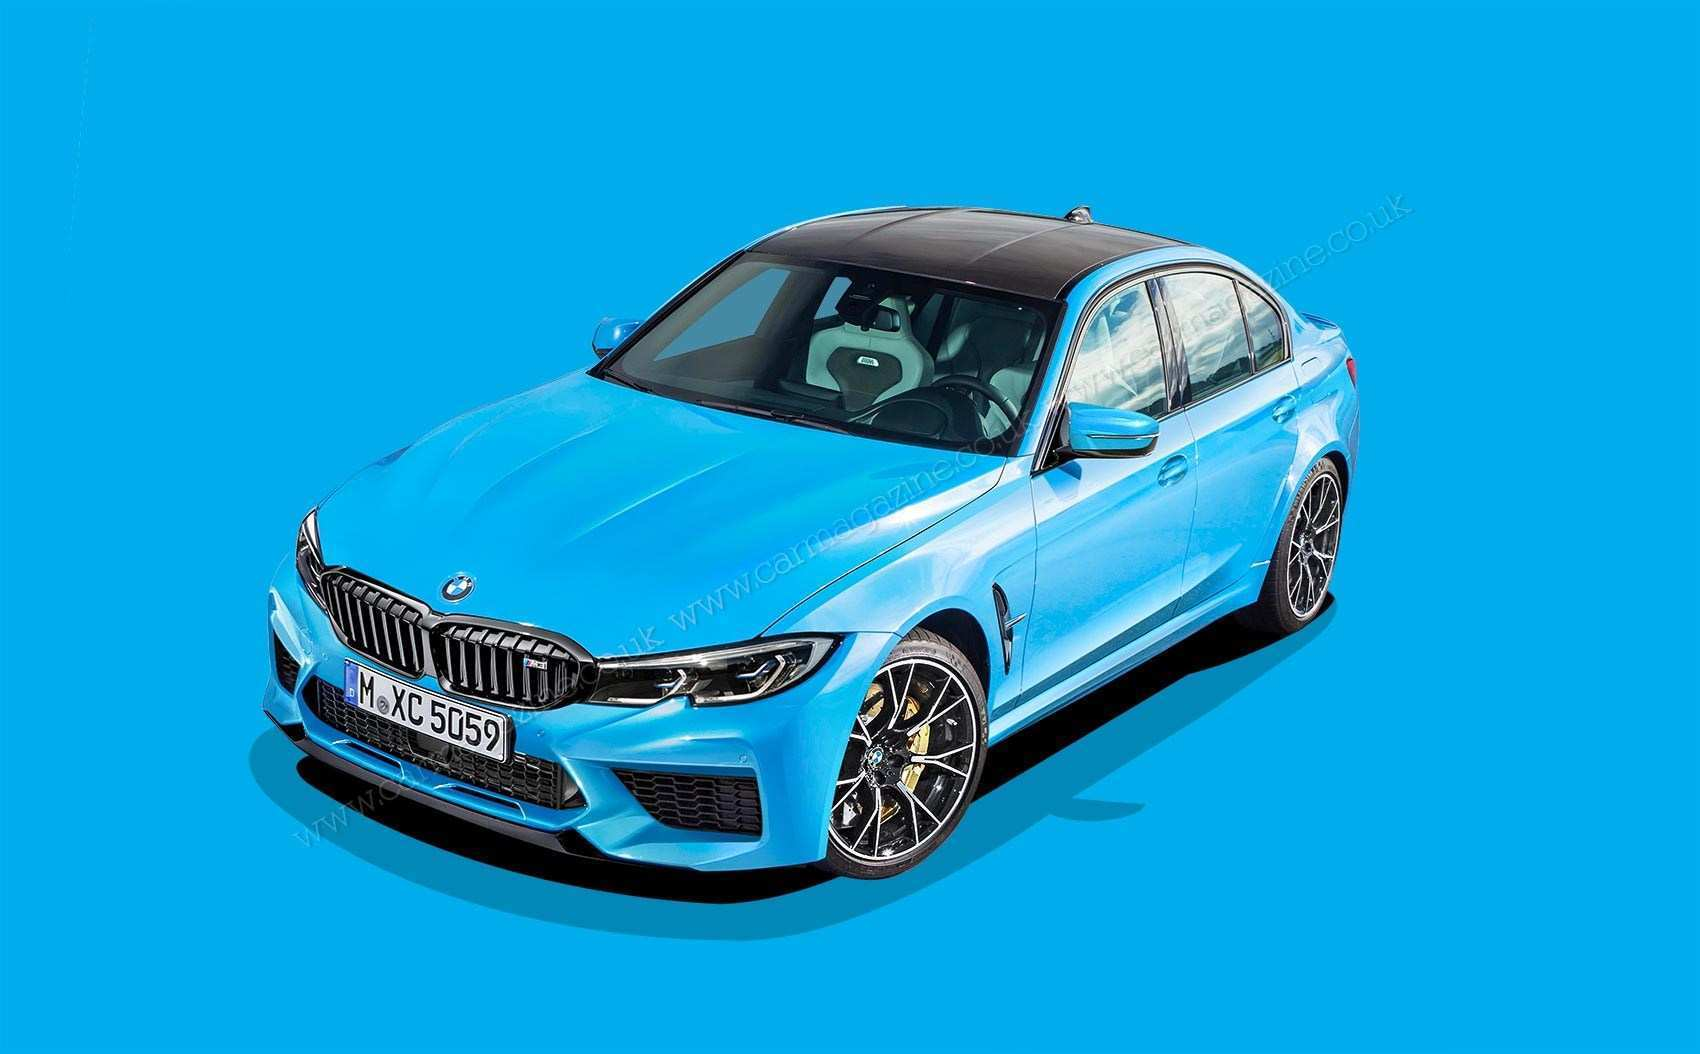 72 The Best 2020 BMW M4 All Wheel Drive Interior